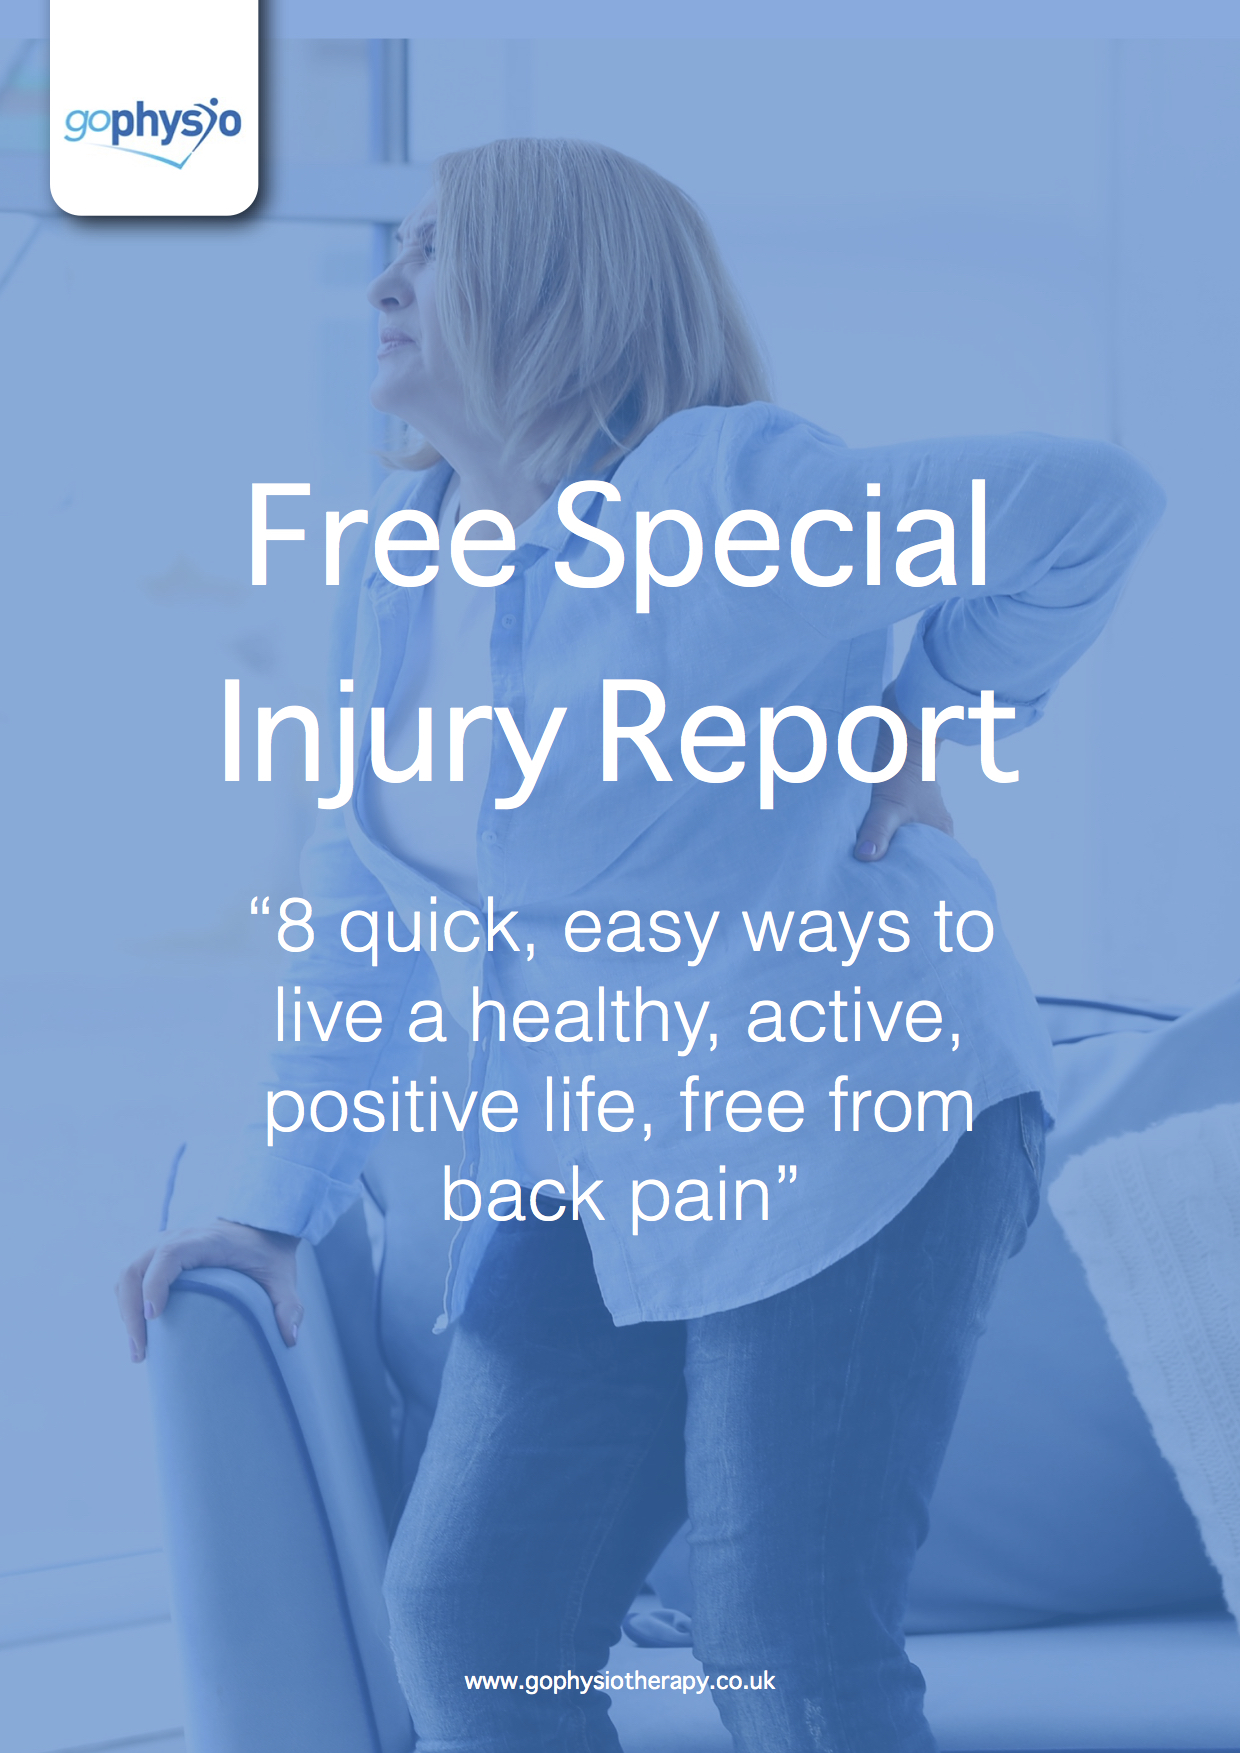 Free Special Injury Report - Back Pain